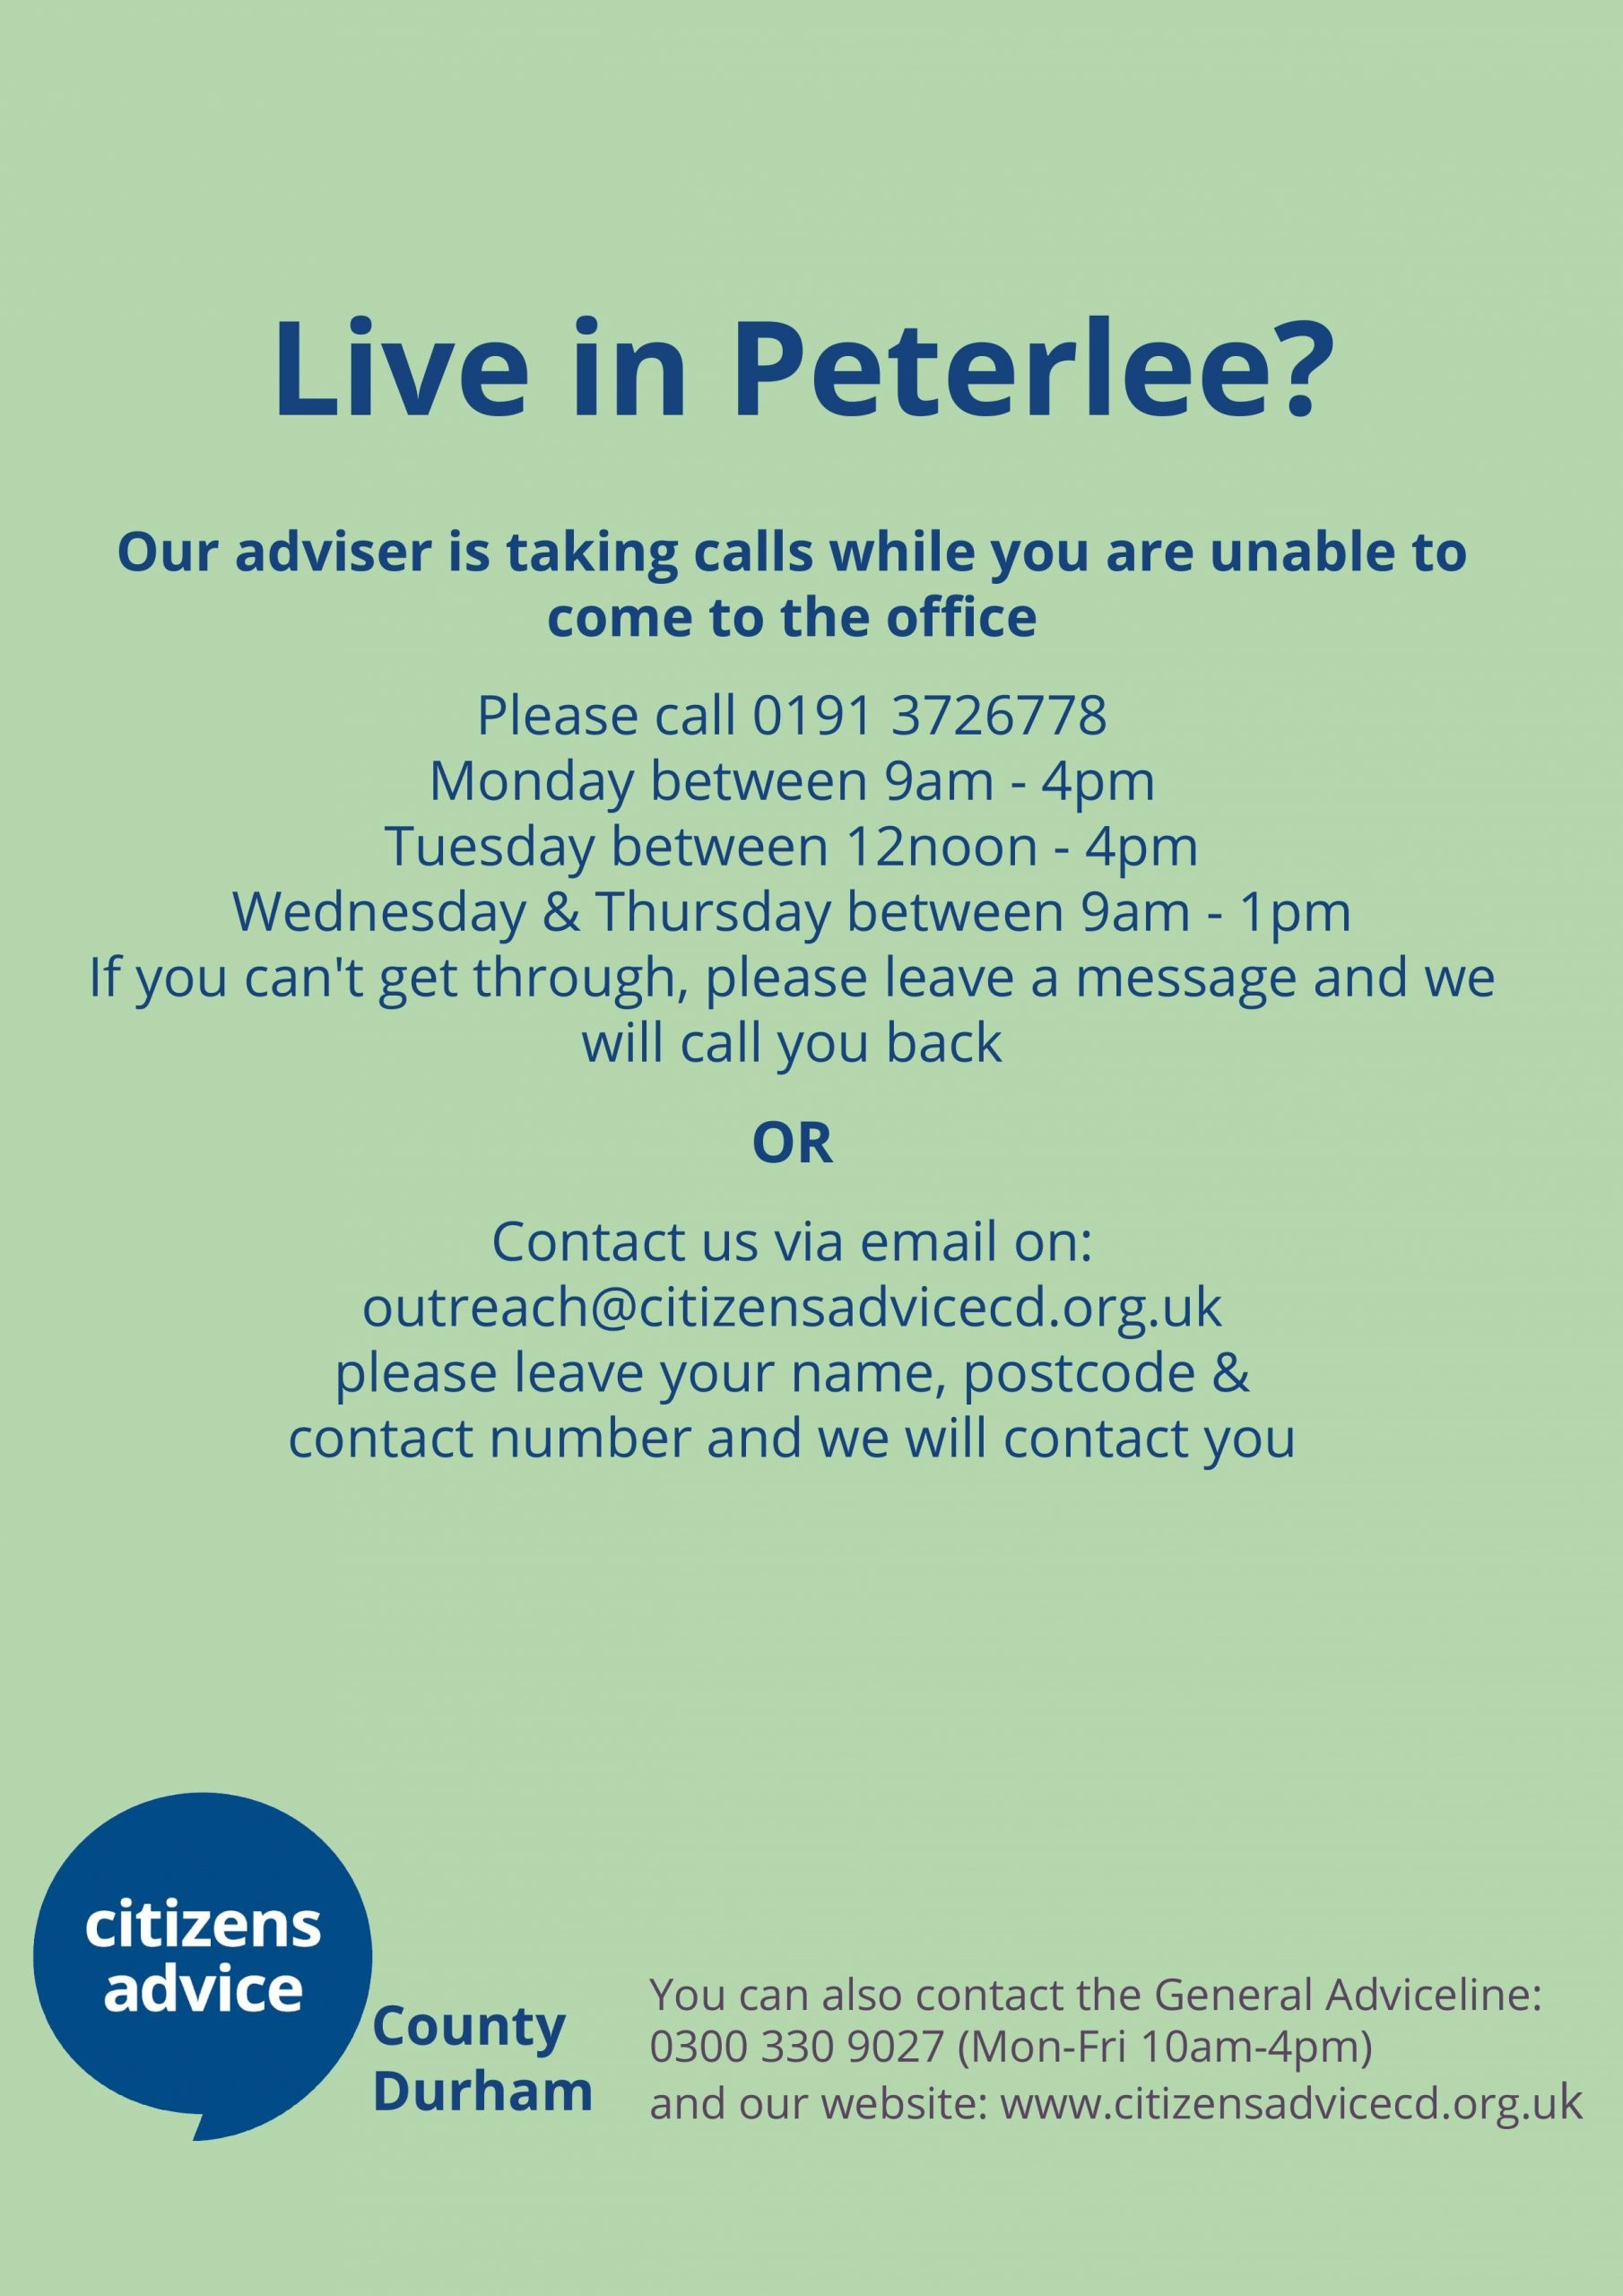 Peterlee Residents advice contact